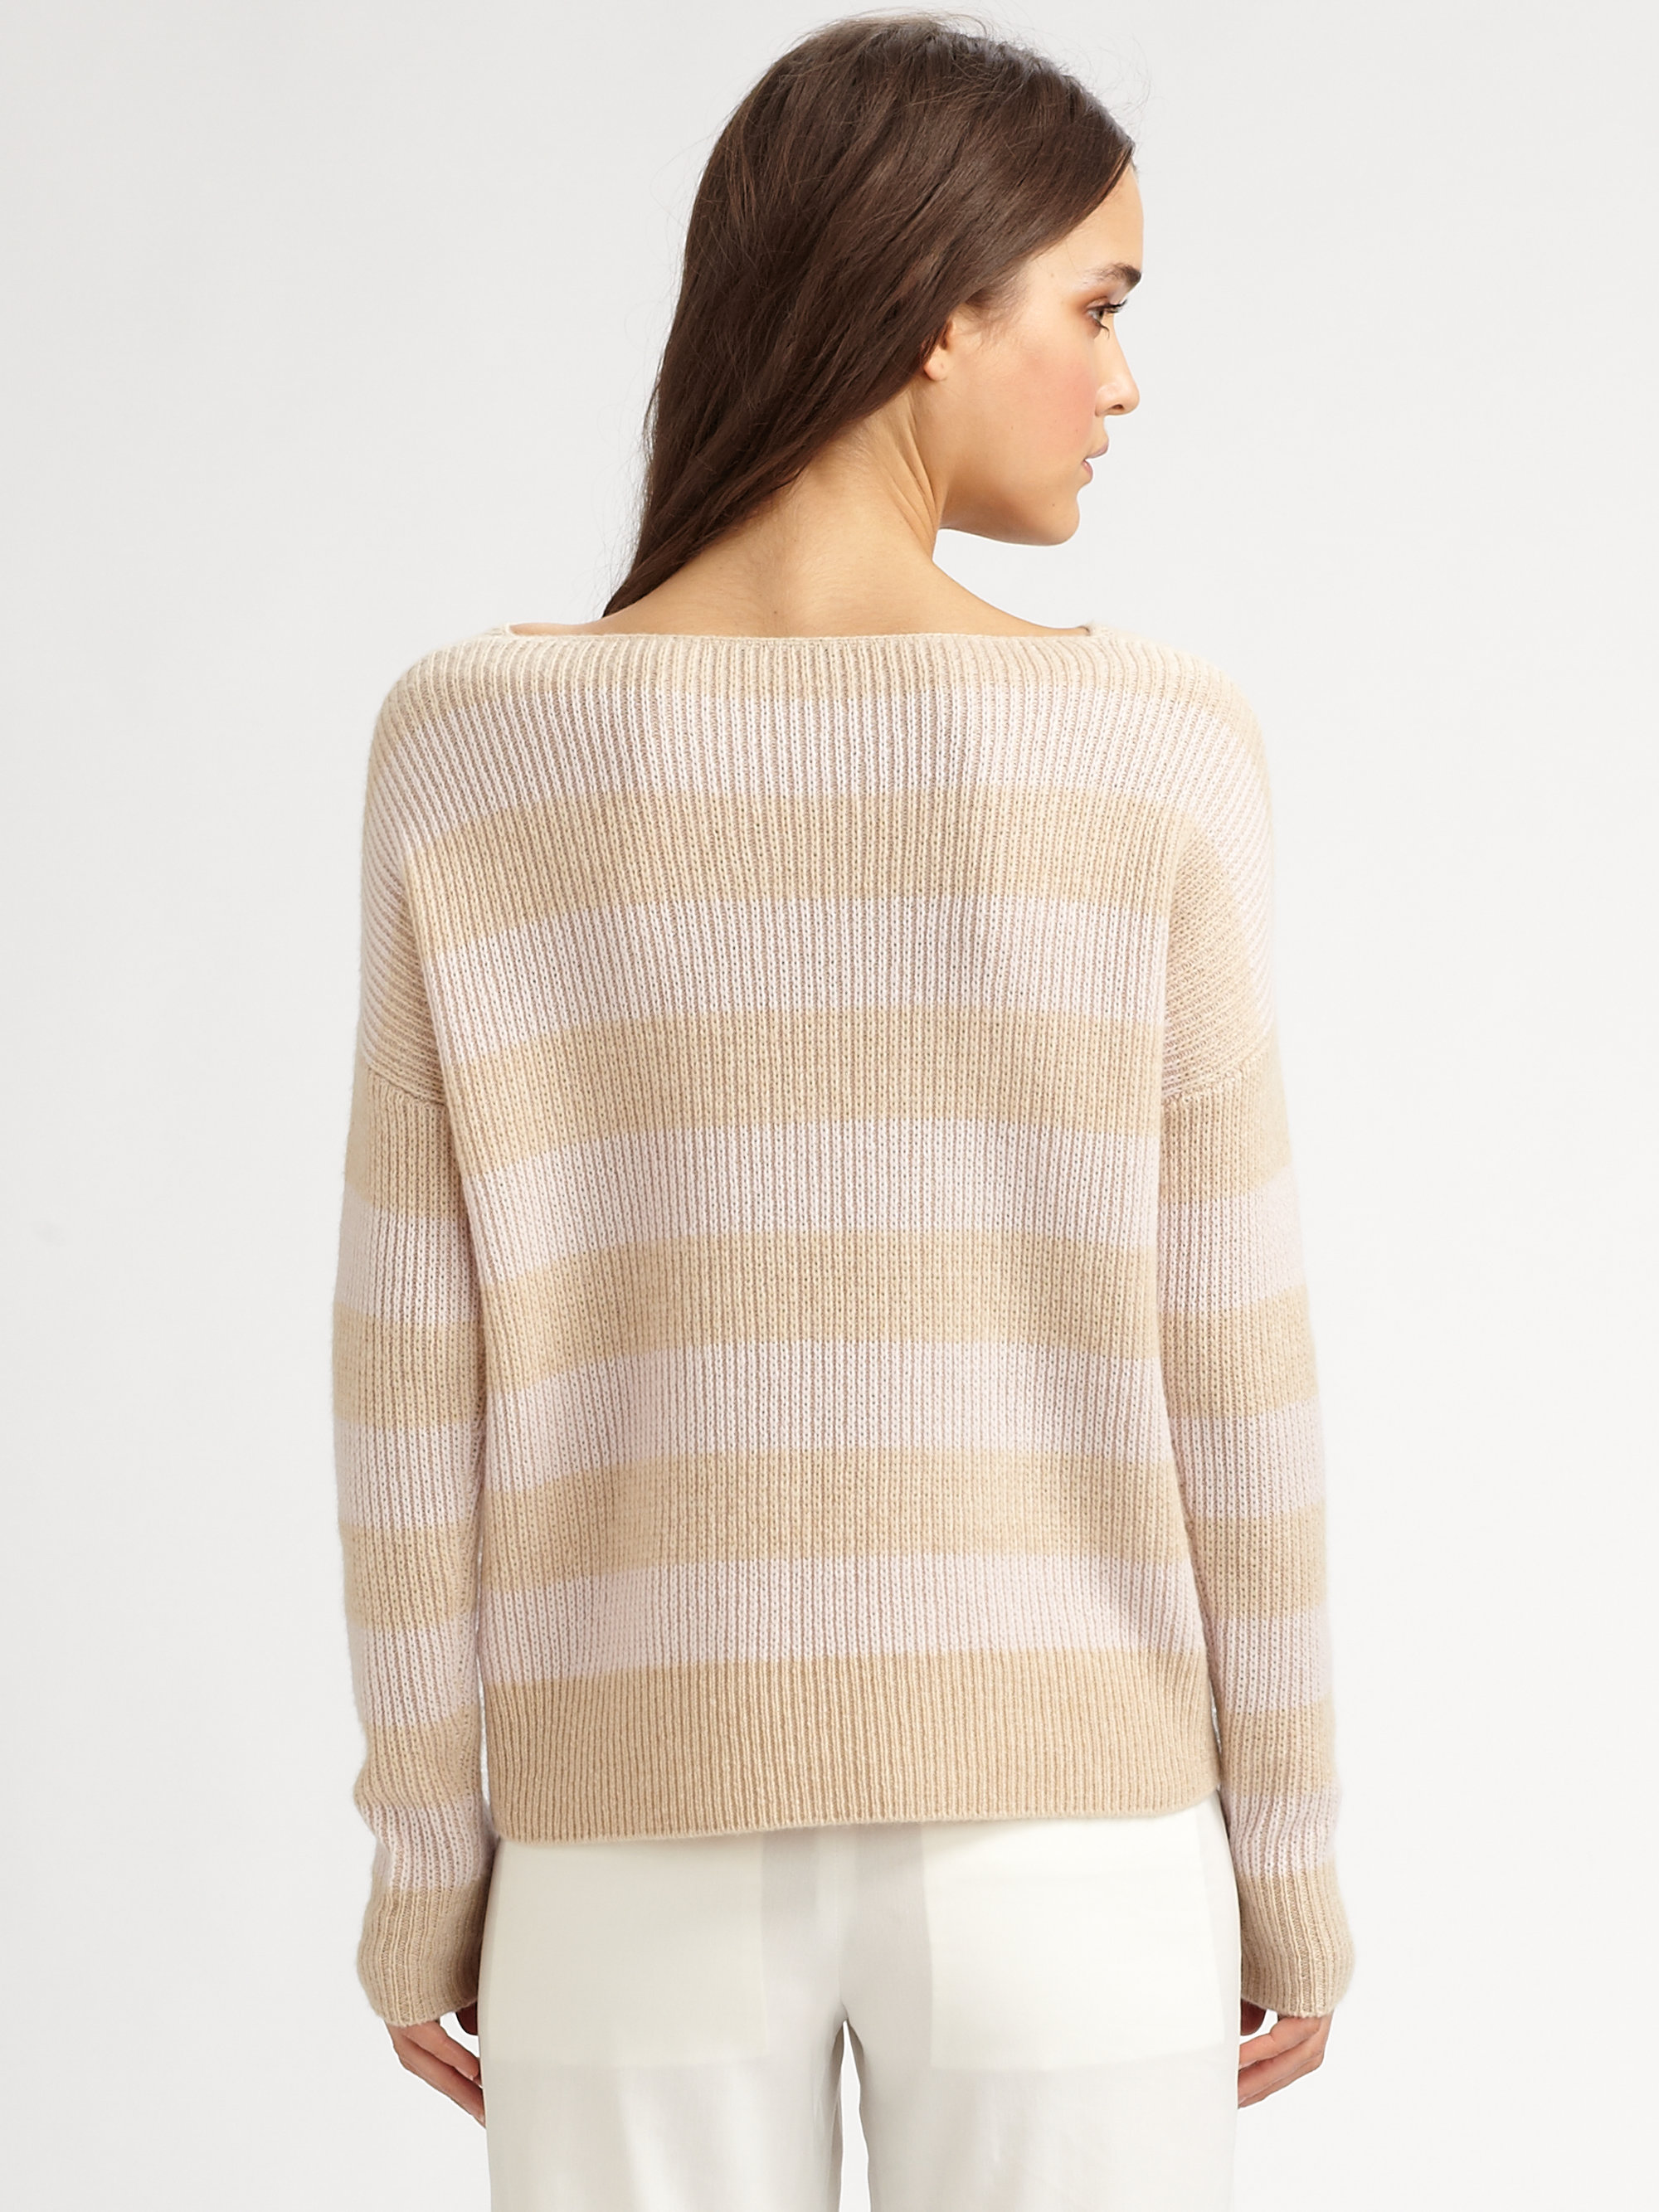 Theory Jilliane Cashmere Sweater in Natural | Lyst